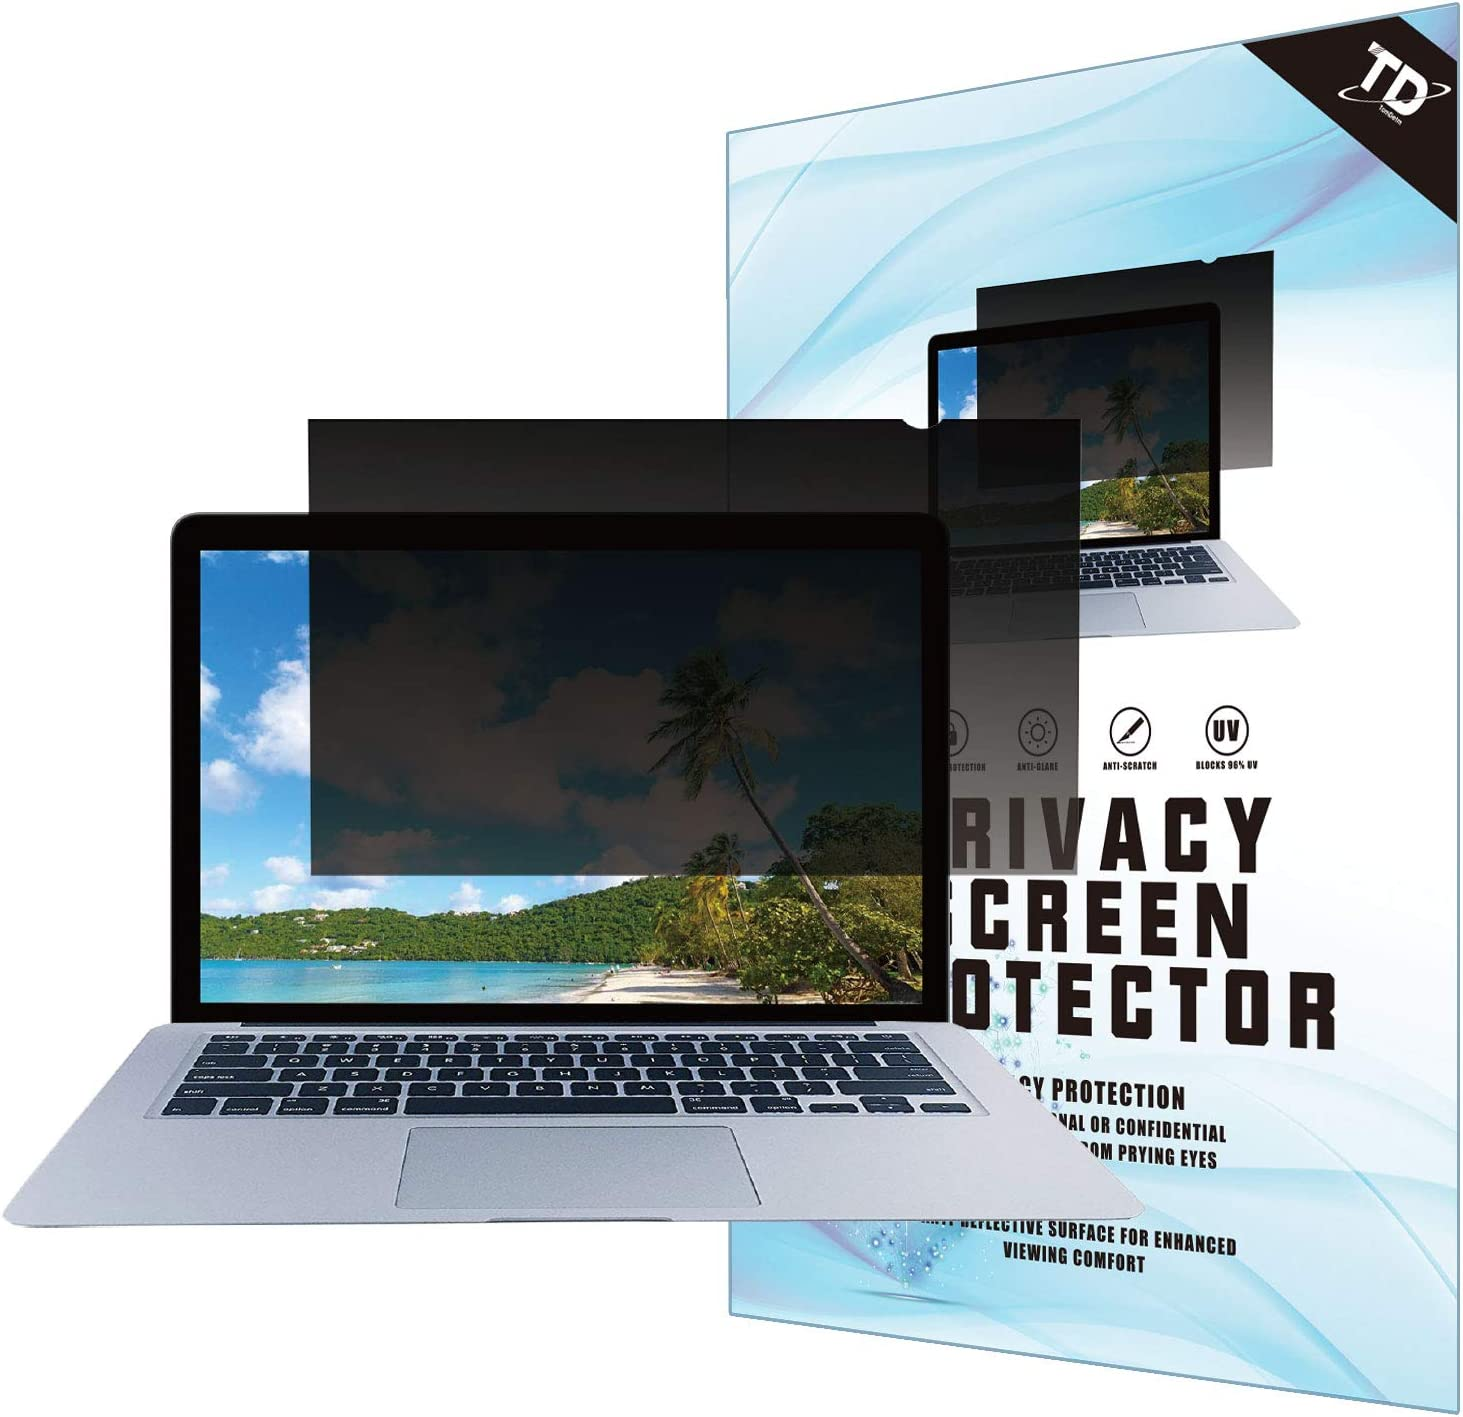 16''W Inch Privacy Screen Filter for Widescreen Laptop - Anti-Glare, Blocks 96% UV,Anti-Scratch with 16:9 Aspect Ratio